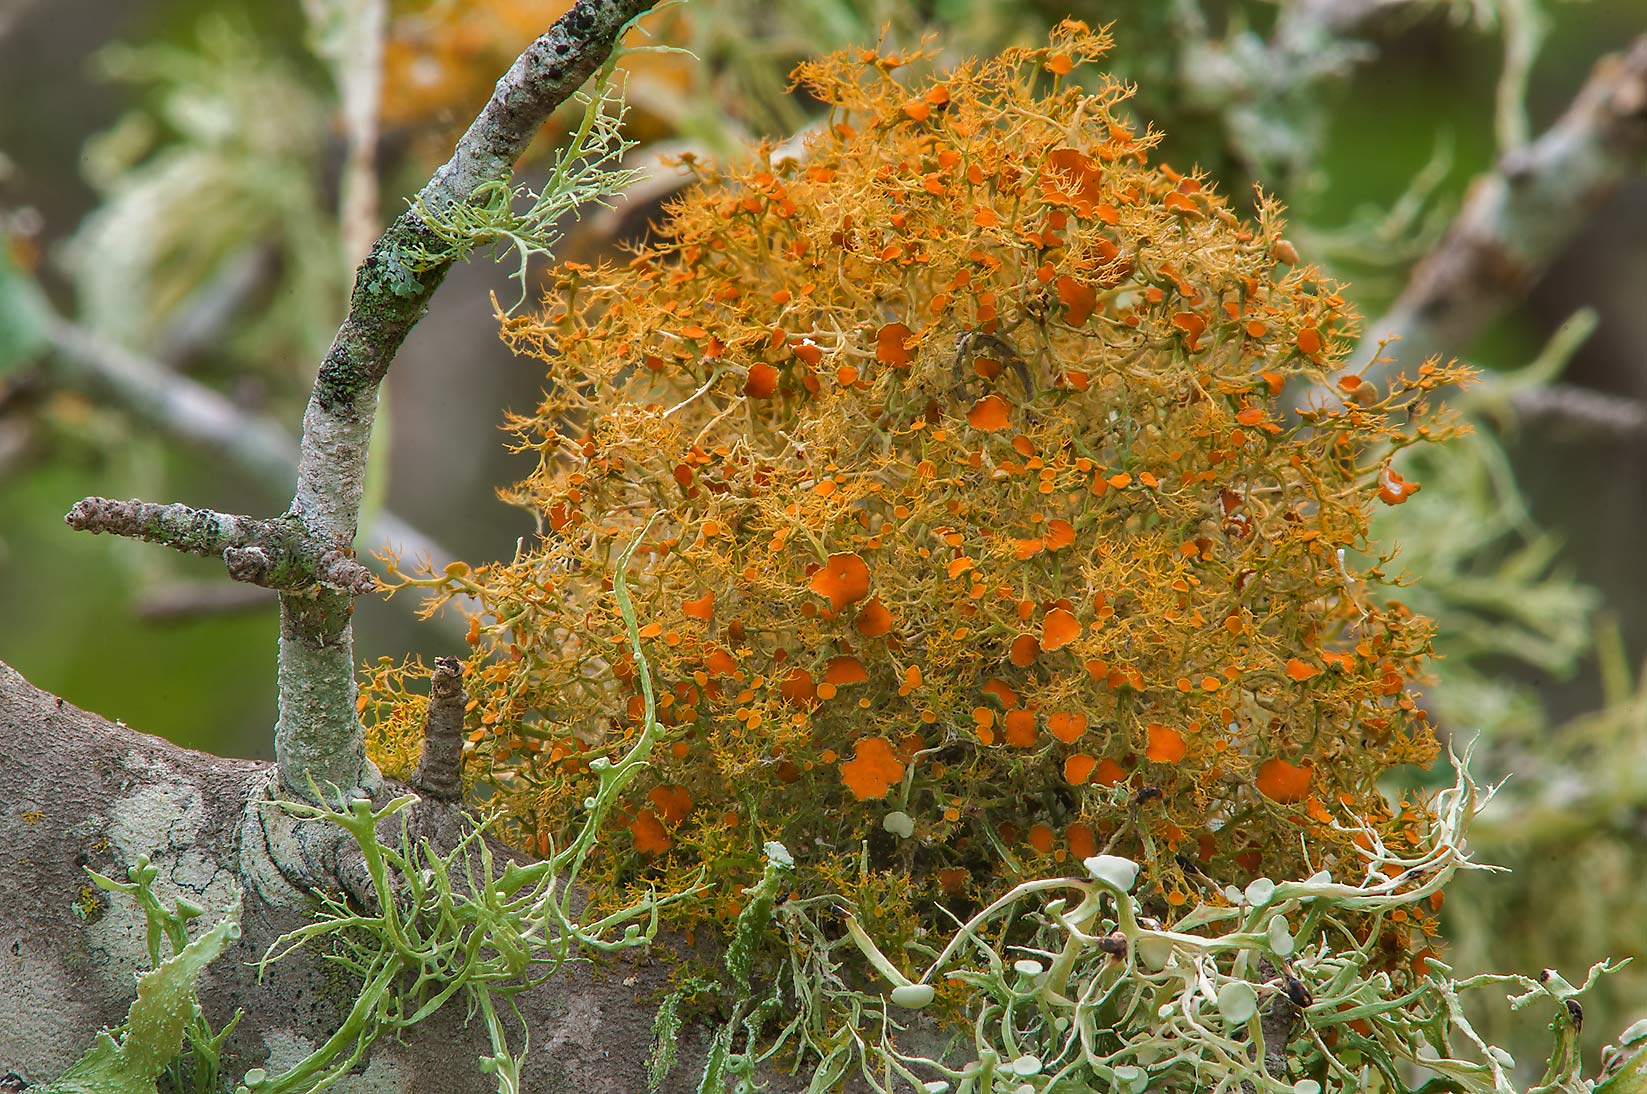 Golden lichen in Lake Bryan Park. Bryan, Texas